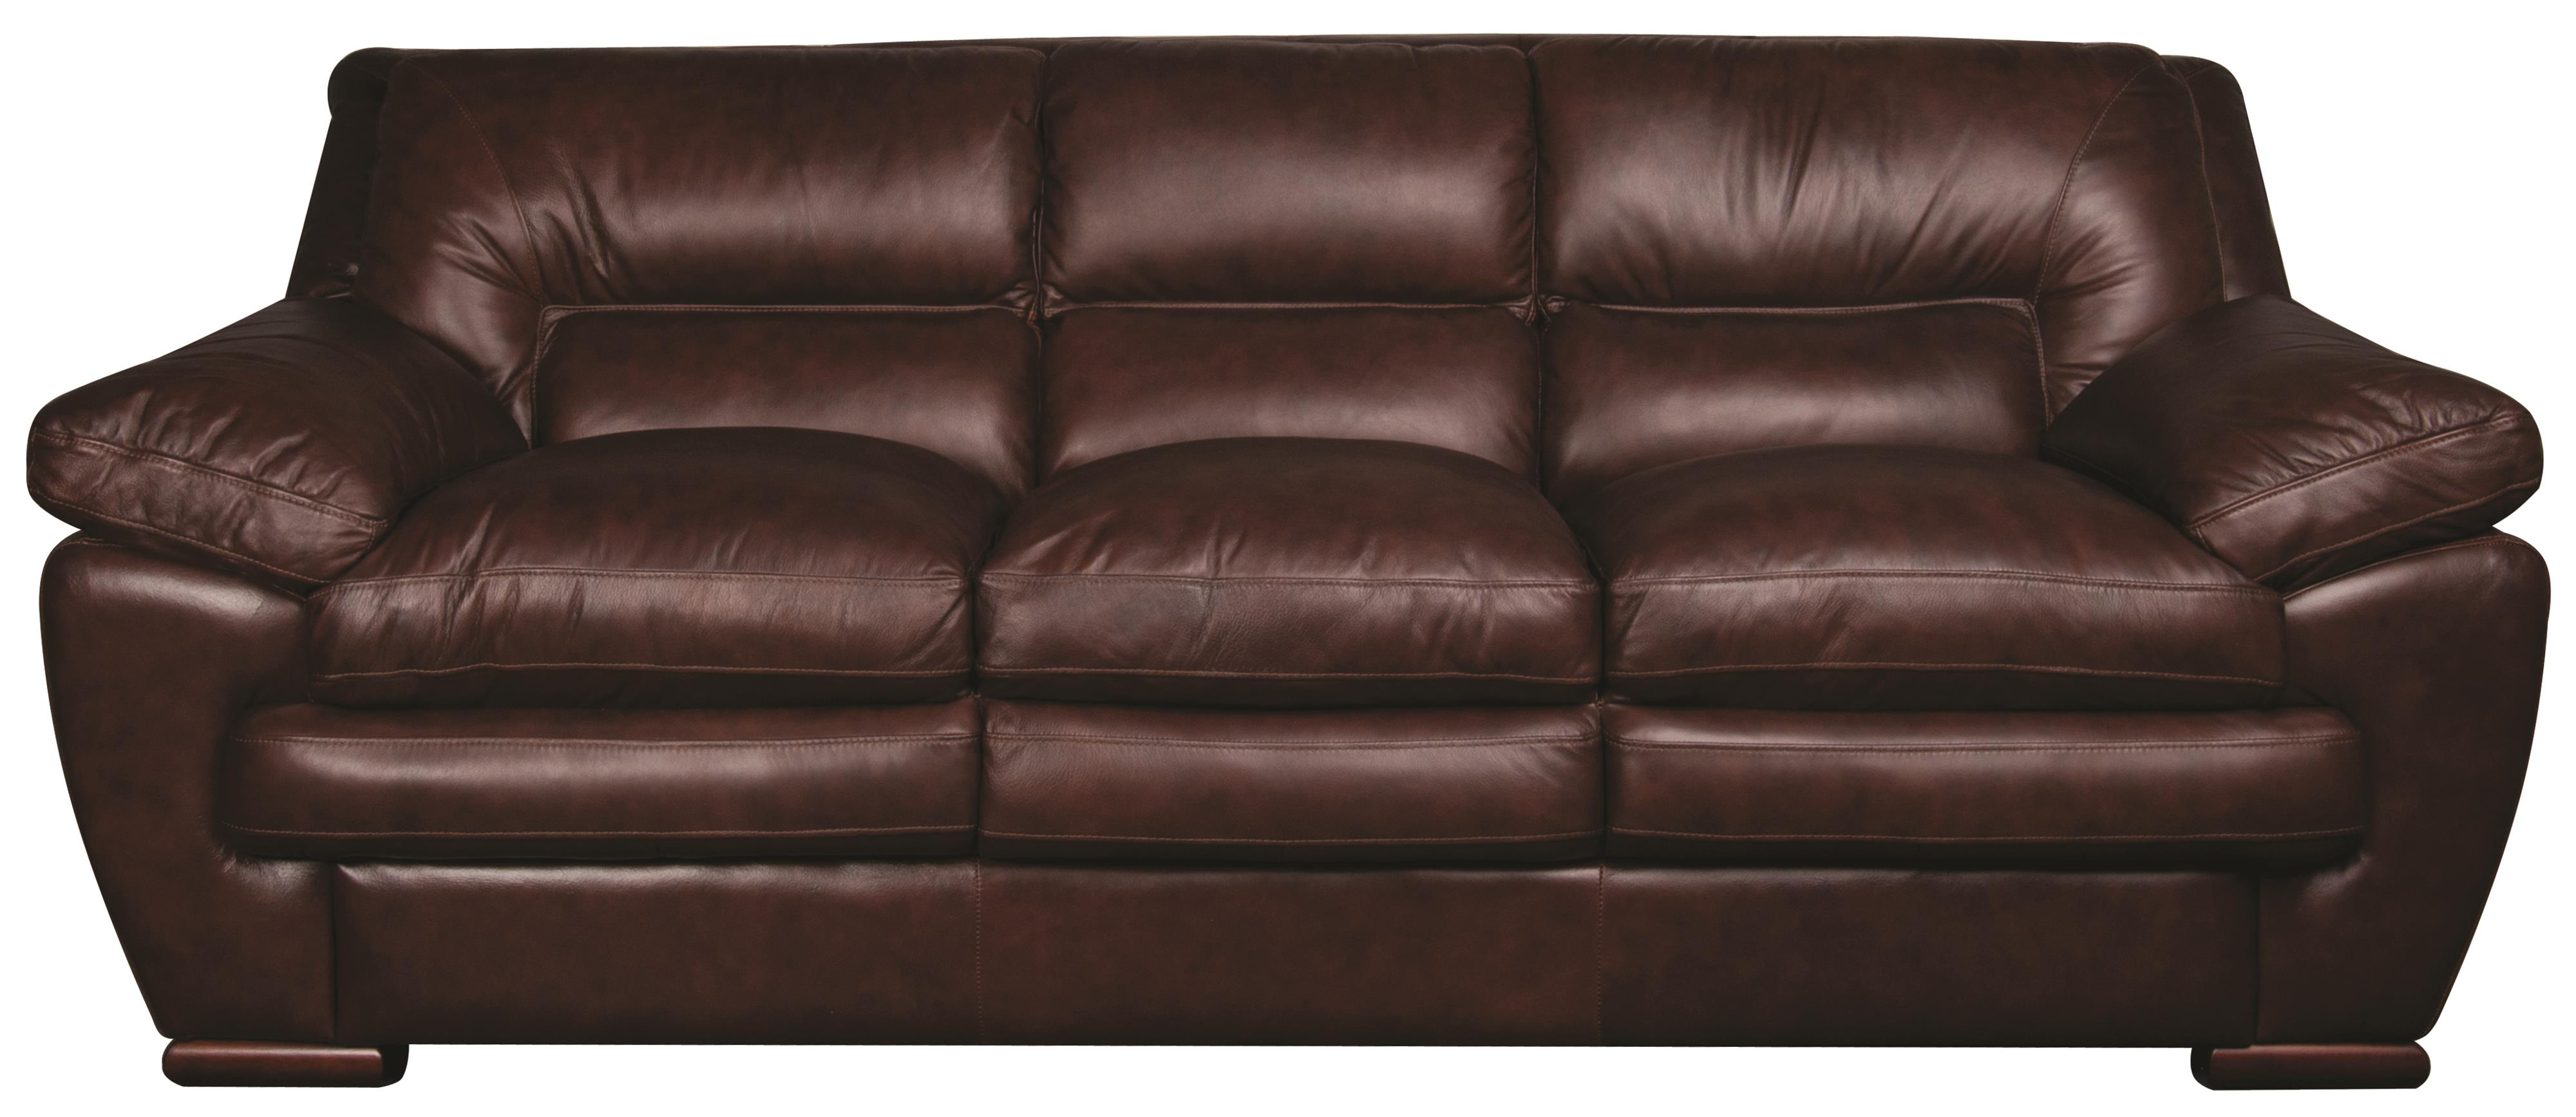 Austin 100 leather sofa morris home sofa Morris home furniture hours